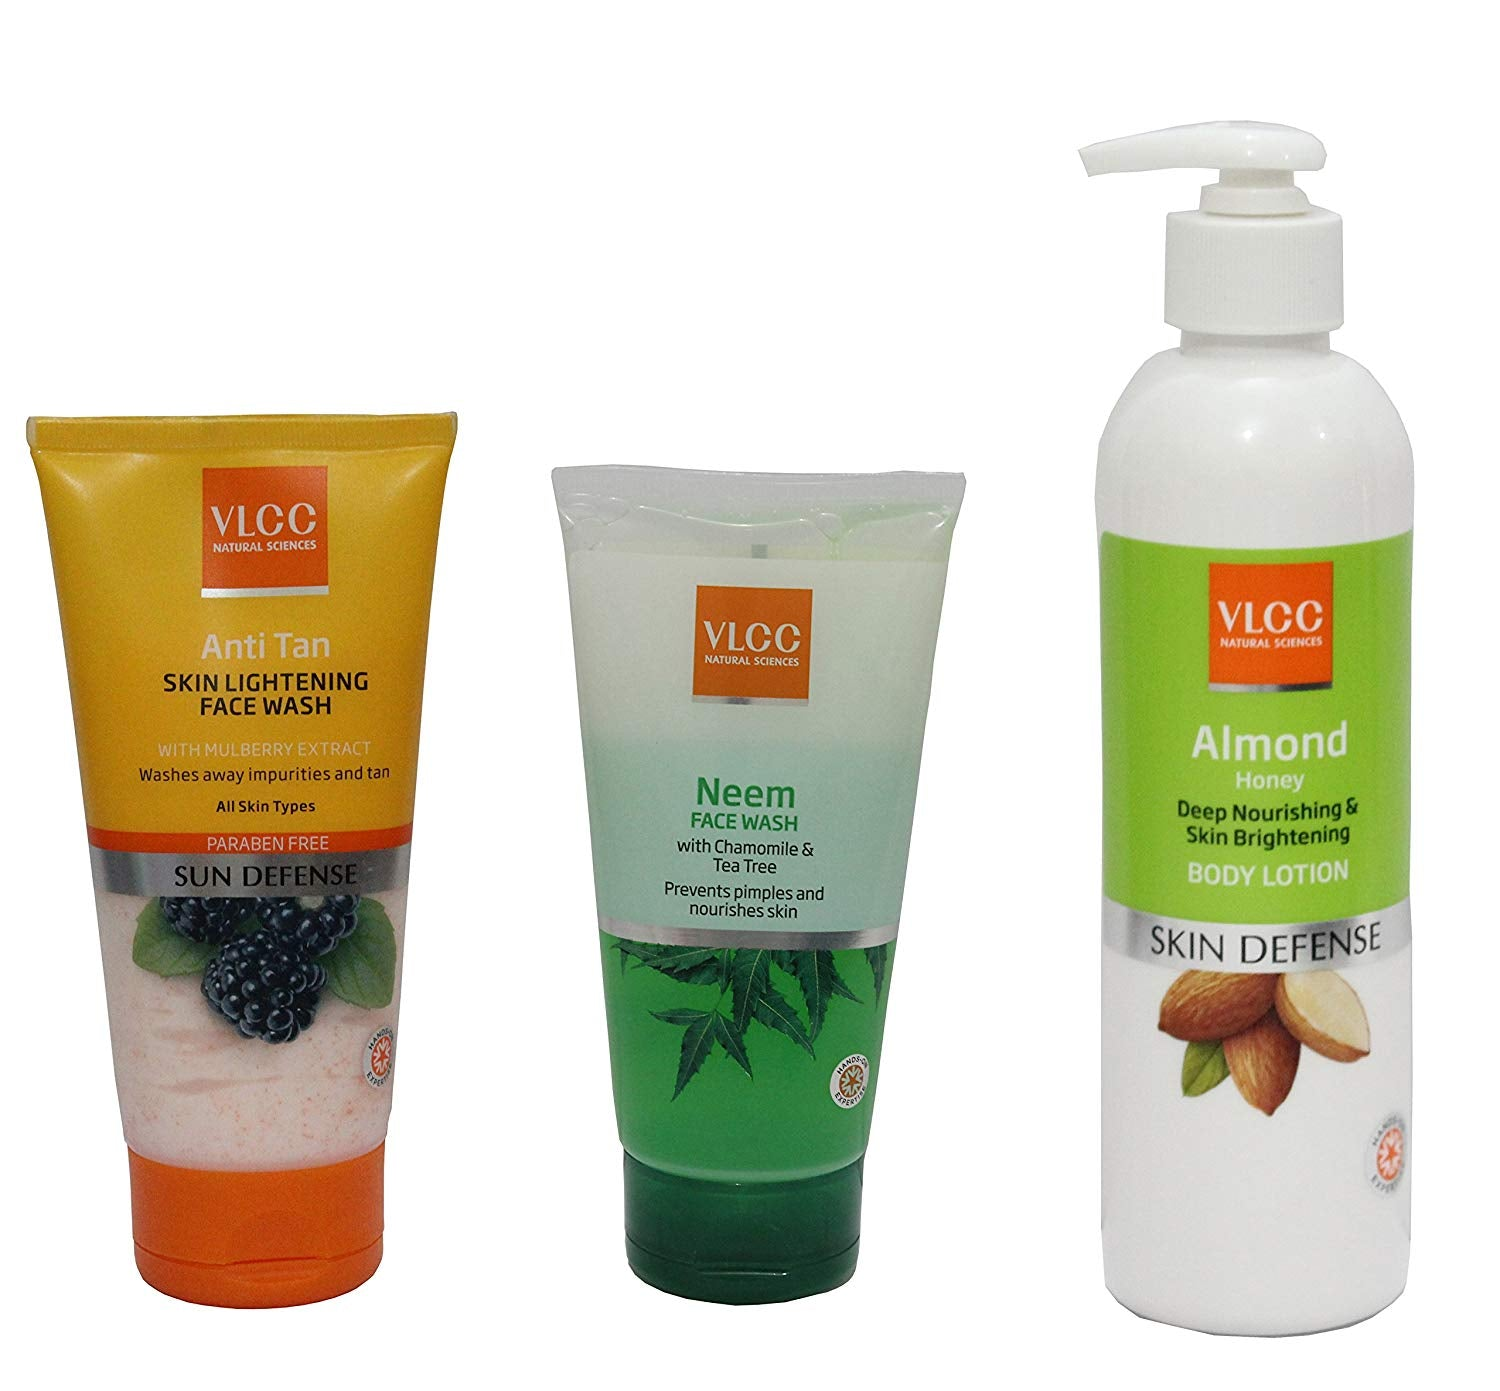 Body Lotions And Creams A1 Quality Store Buy 2 Get 20 Chicco Baby Moments Bath Foam Soft Cup Vlcc Combo Anti Tan Face Wash 150 Ml Neem